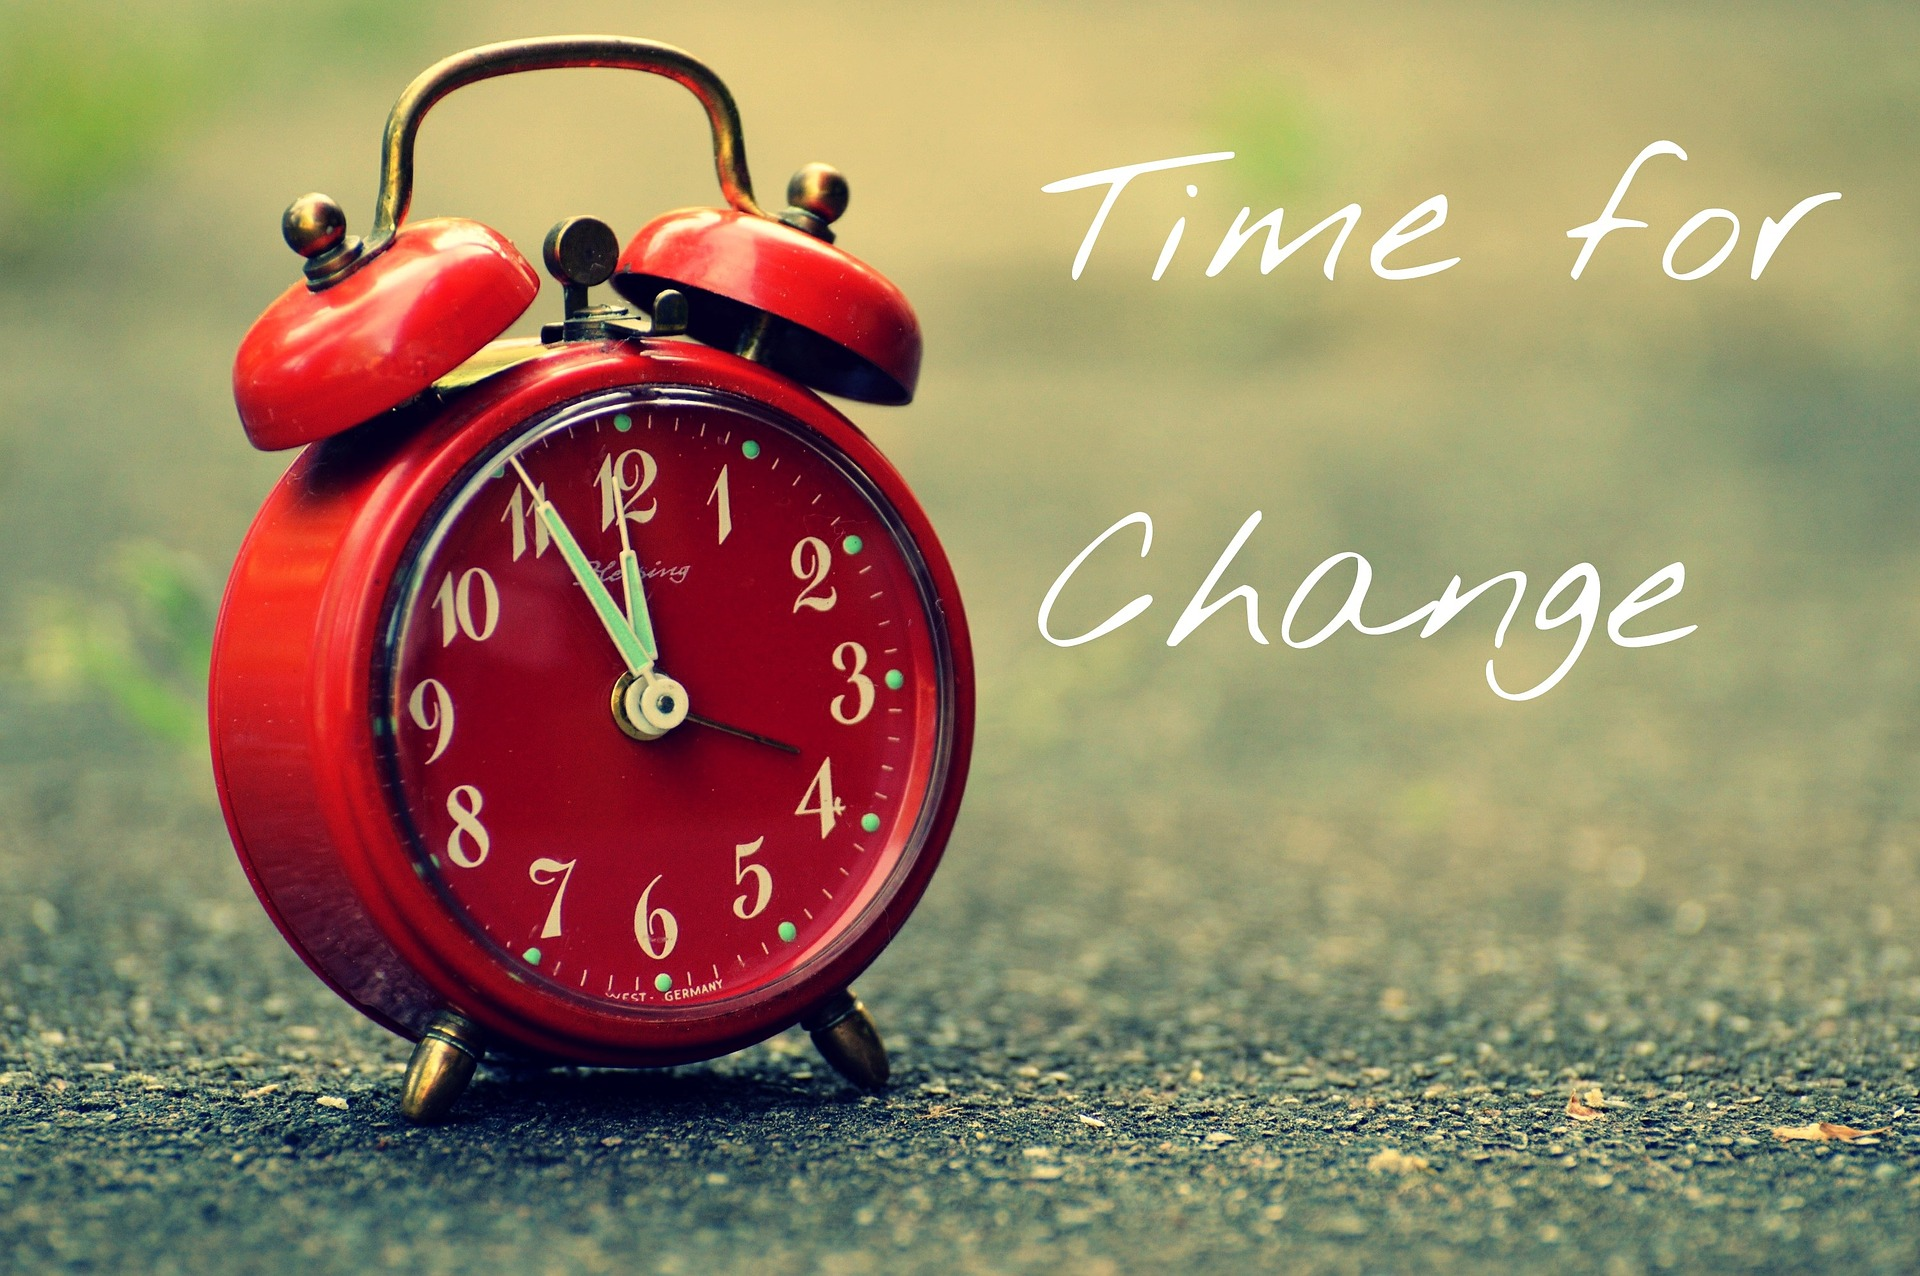 Are you still preparing to change or actually willing to change